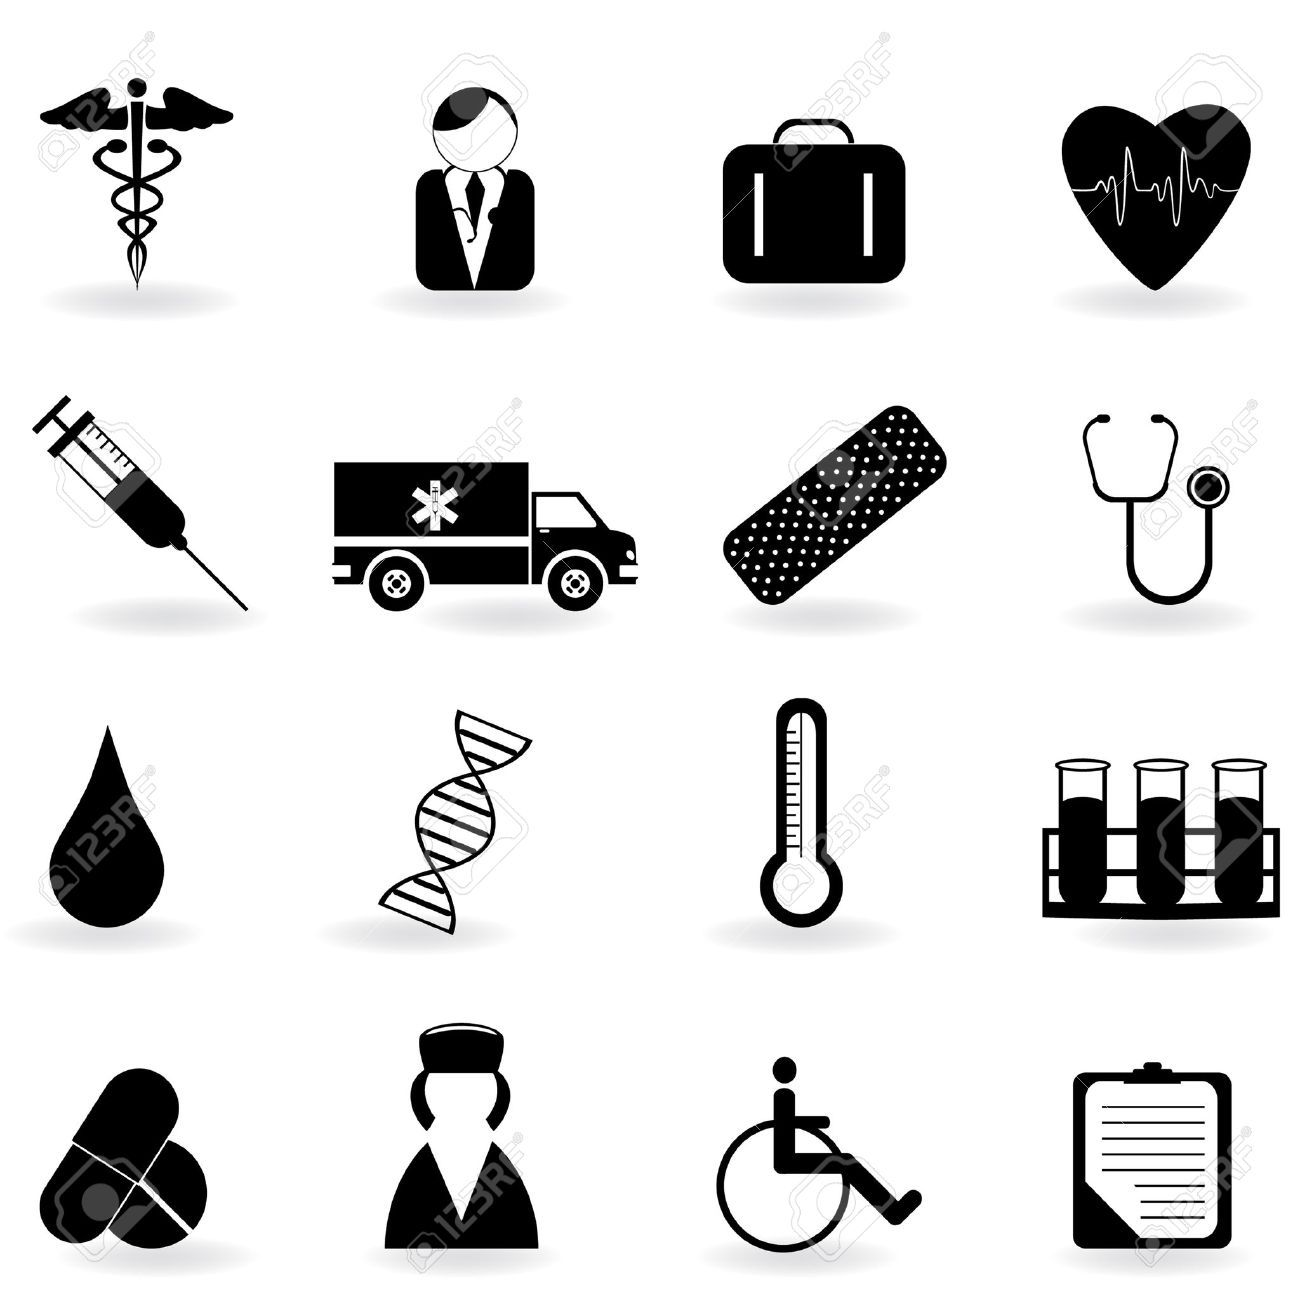 Medical and health care related symbols royalty free cliparts medical and health care related symbols royalty free cliparts buycottarizona Gallery